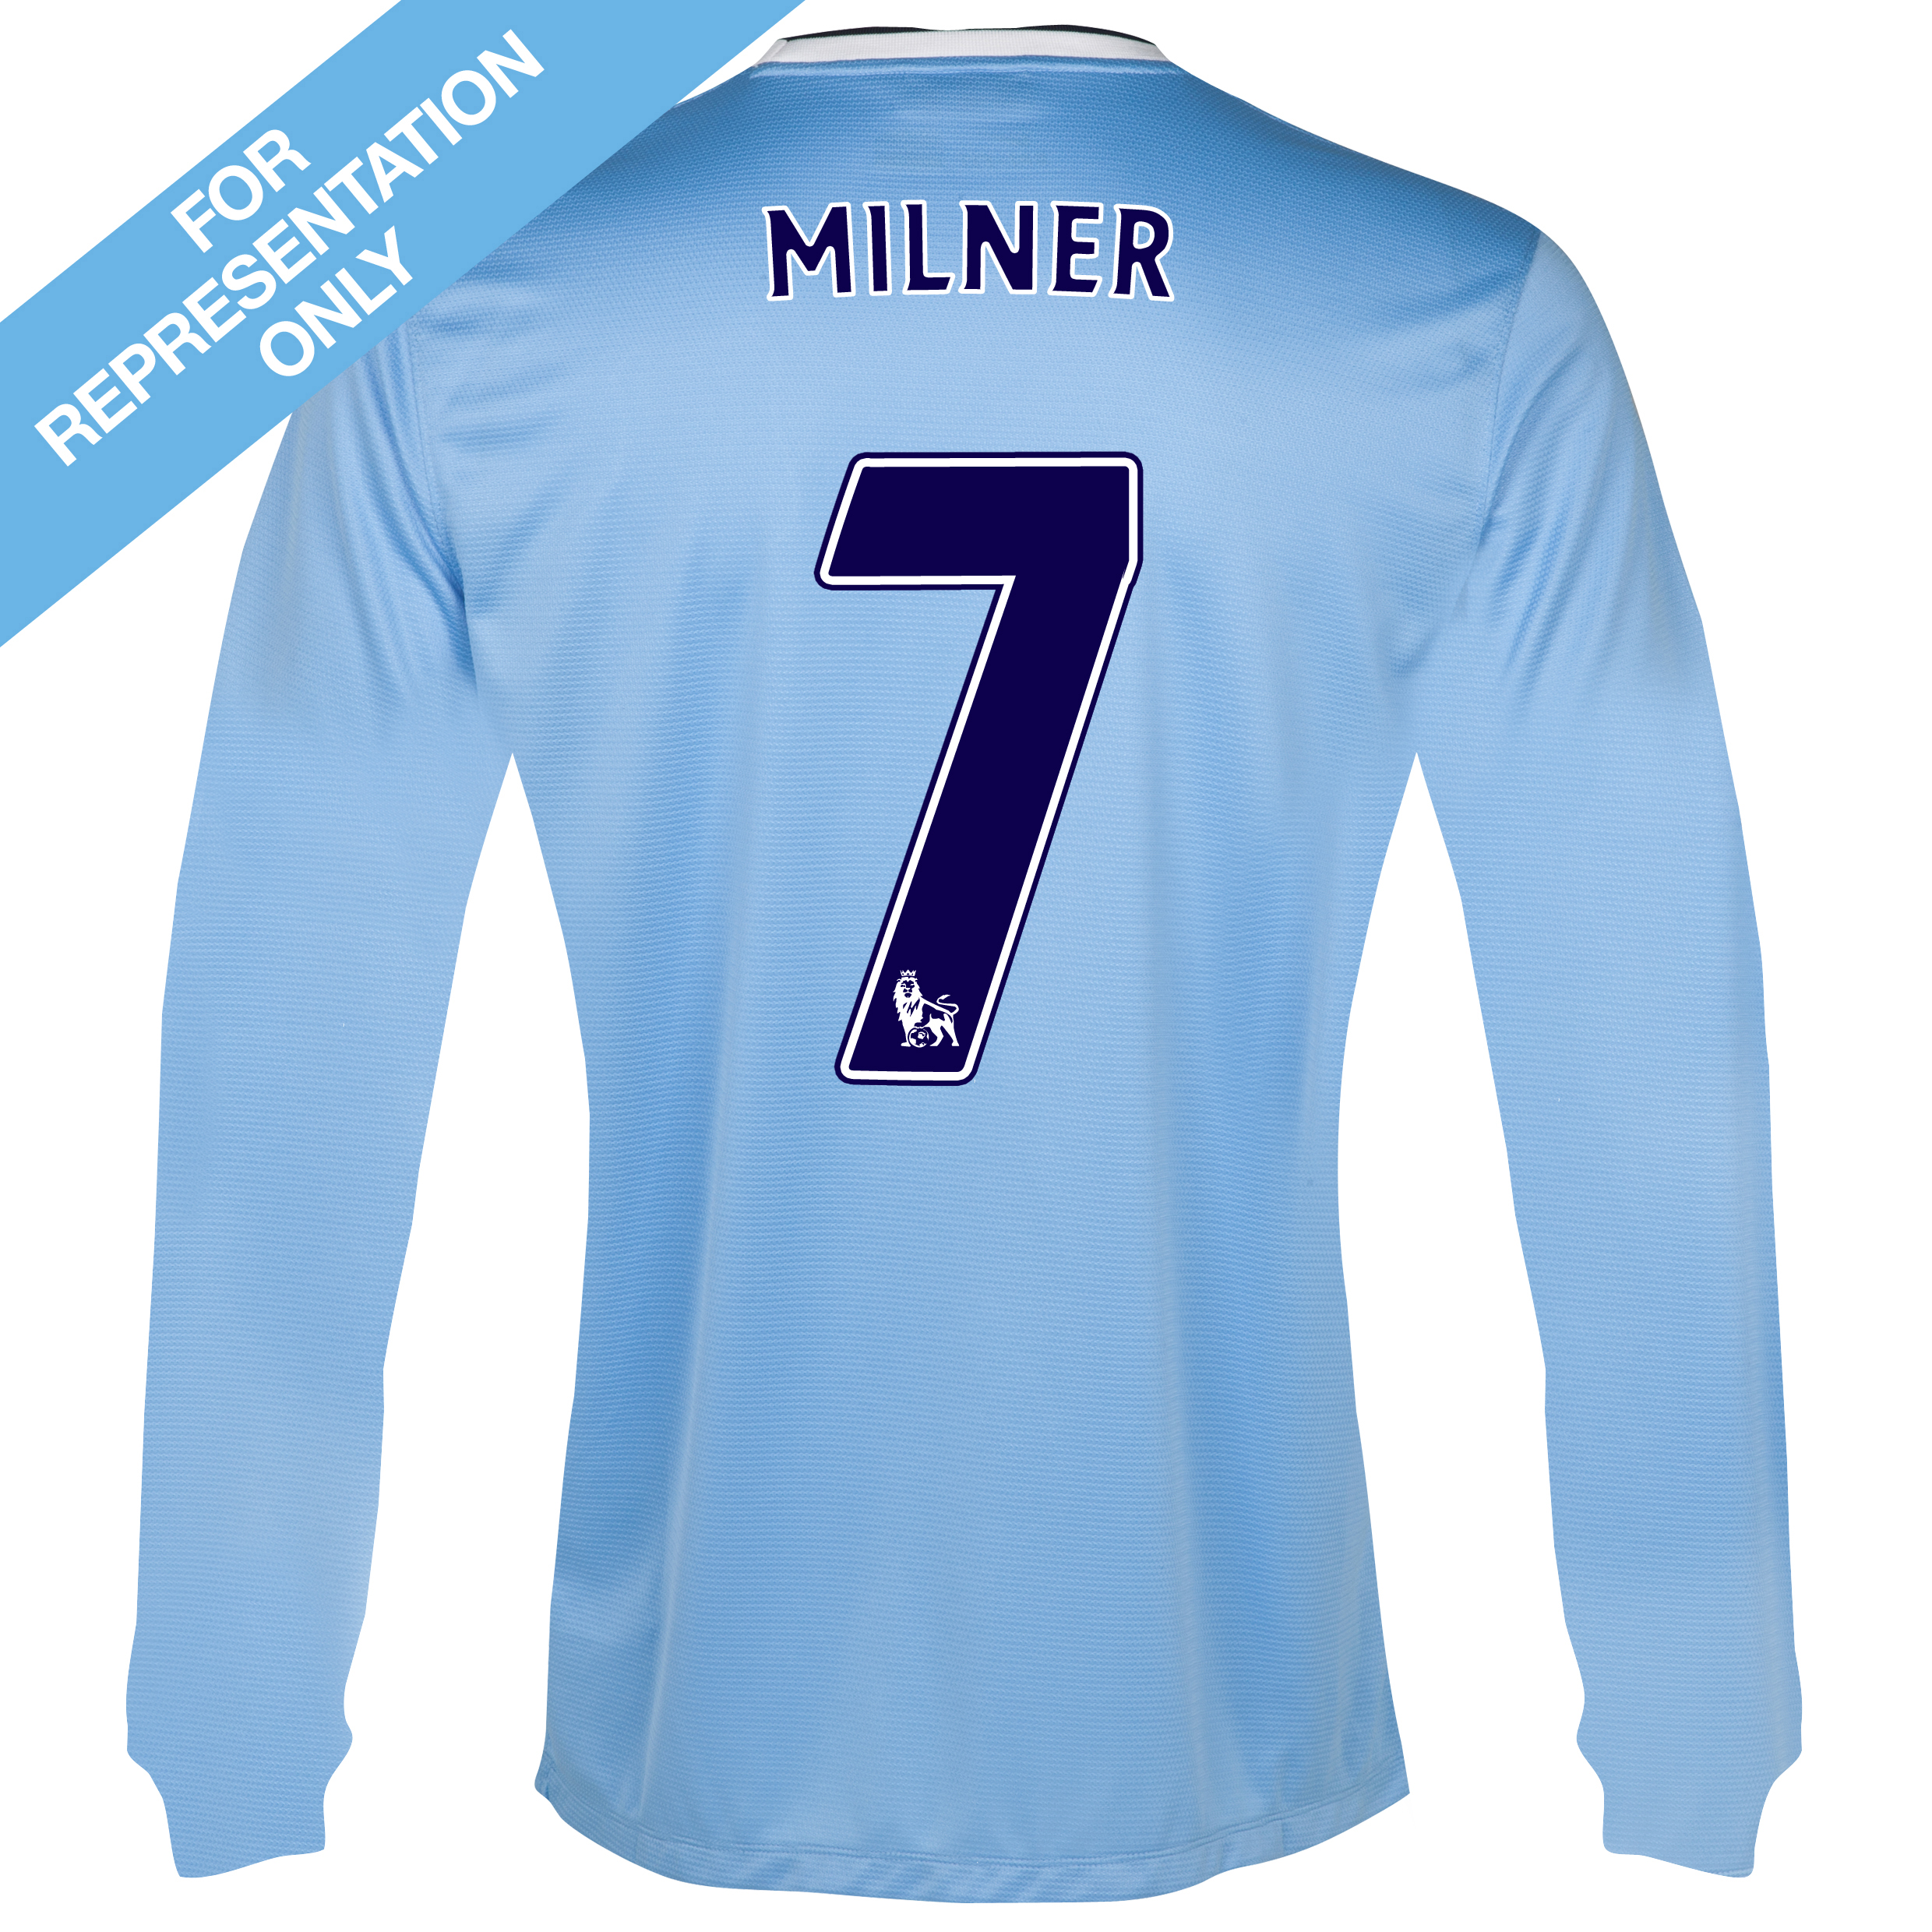 Manchester City Home Shirt 2013/14 - Long Sleeved with Milner 7 printing